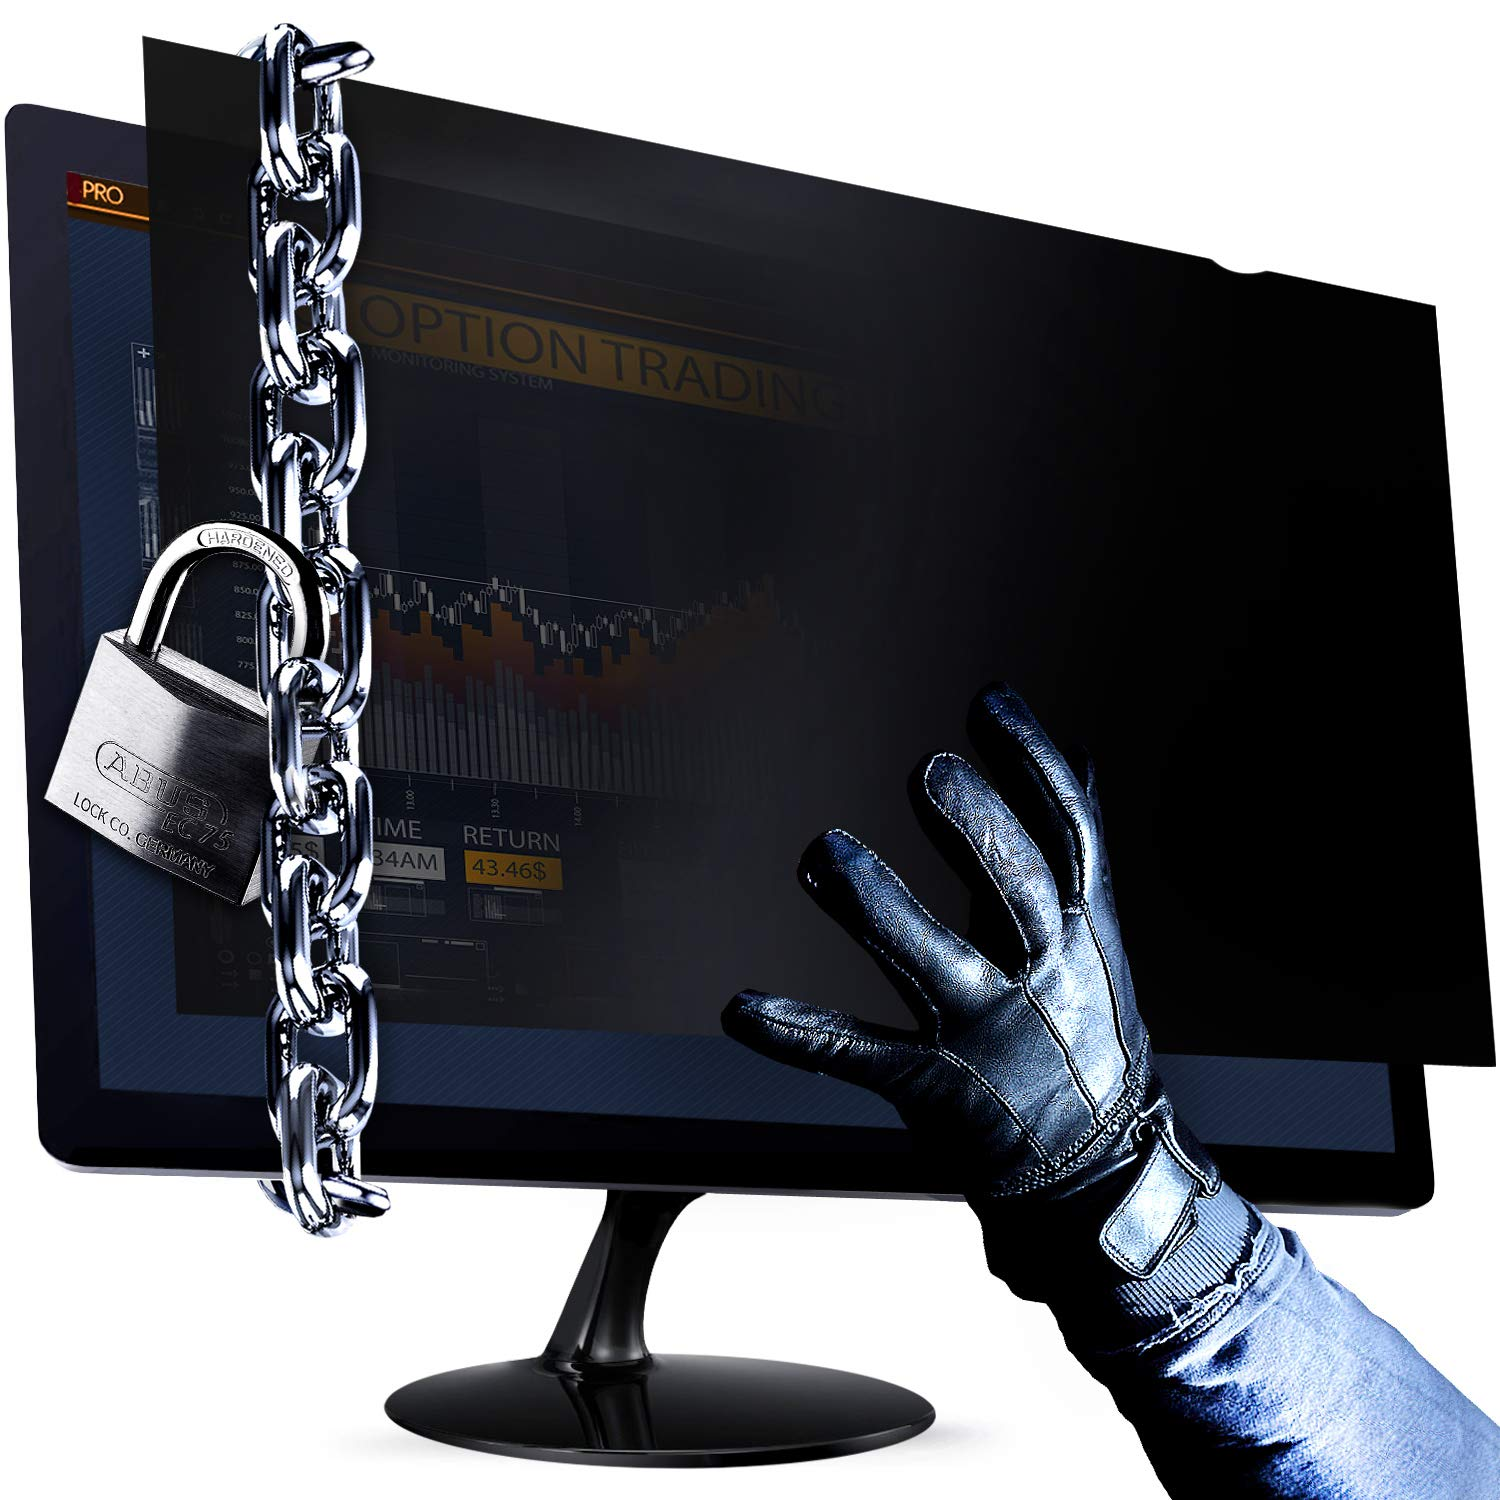 """24 Inch 16:10 Aspect Ratio Computer Privacy Screen Filter for Widescreen Computer Monitor - Anti-Glare - Anti-Scratch Protector Film for Data confidentiality - We Offer 2 Different 24"""" Aspect Ratios!"""